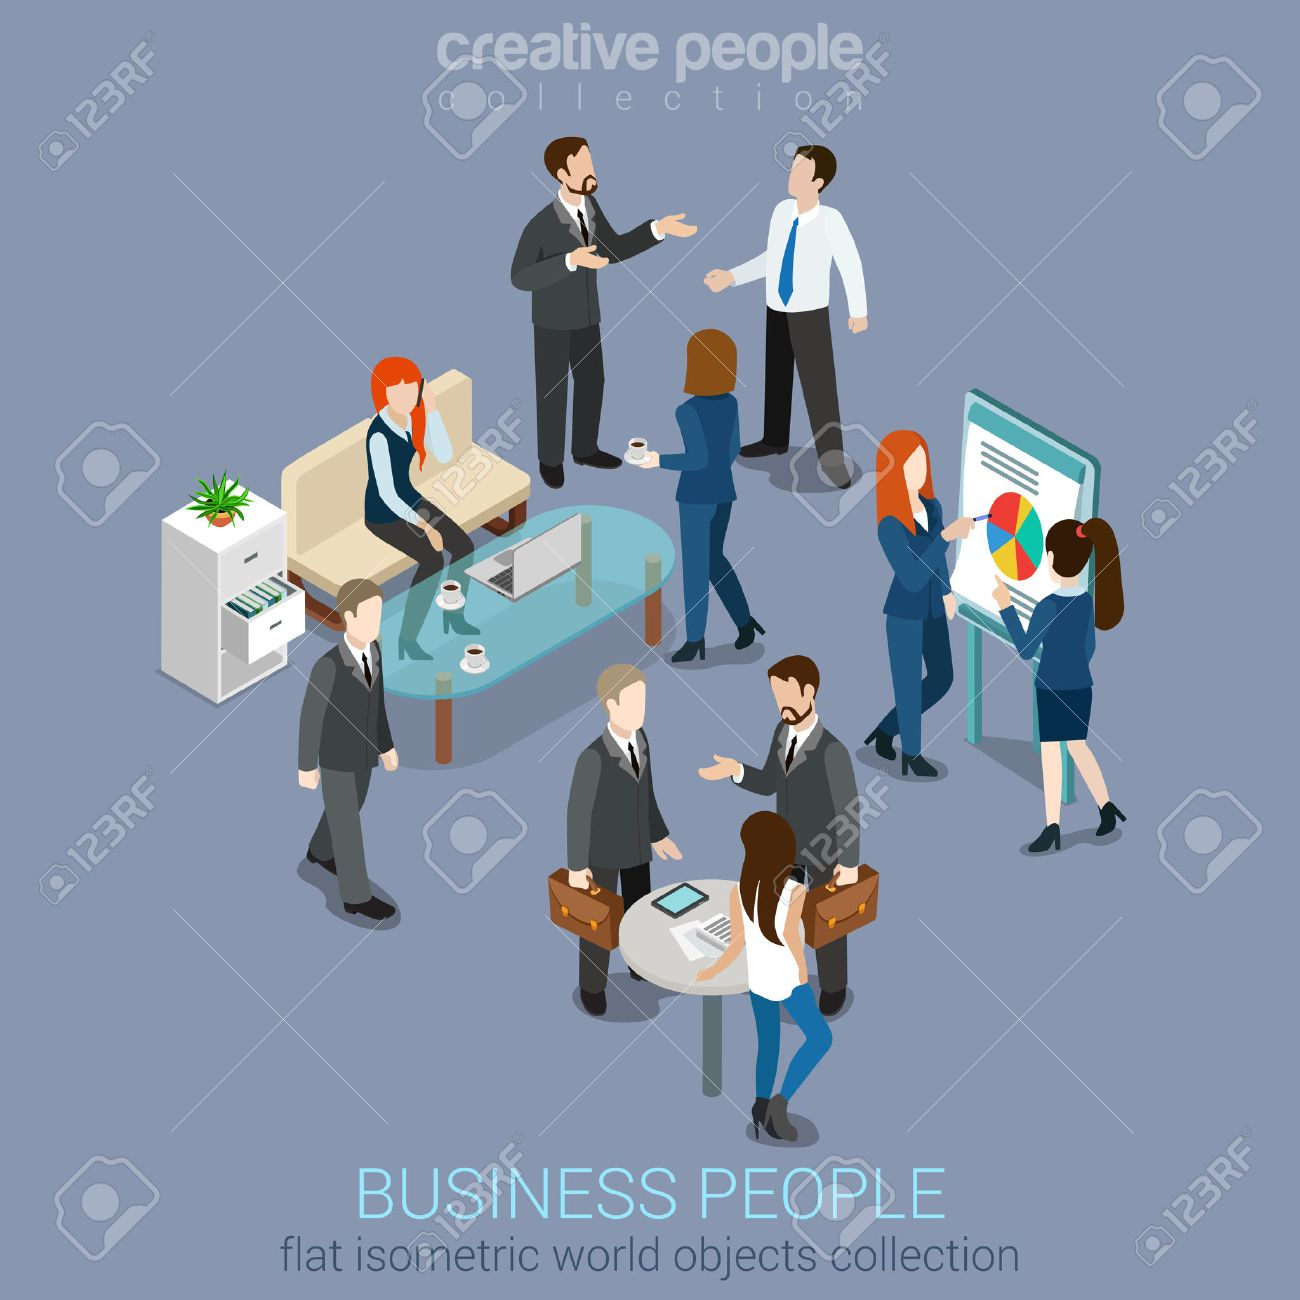 Flat 3d web isometric office room interior businessmen collaboration teamwork brainstorming waiting meeting negotiation infographic concept vector set. Creative people collection Stock Vector - 54641274